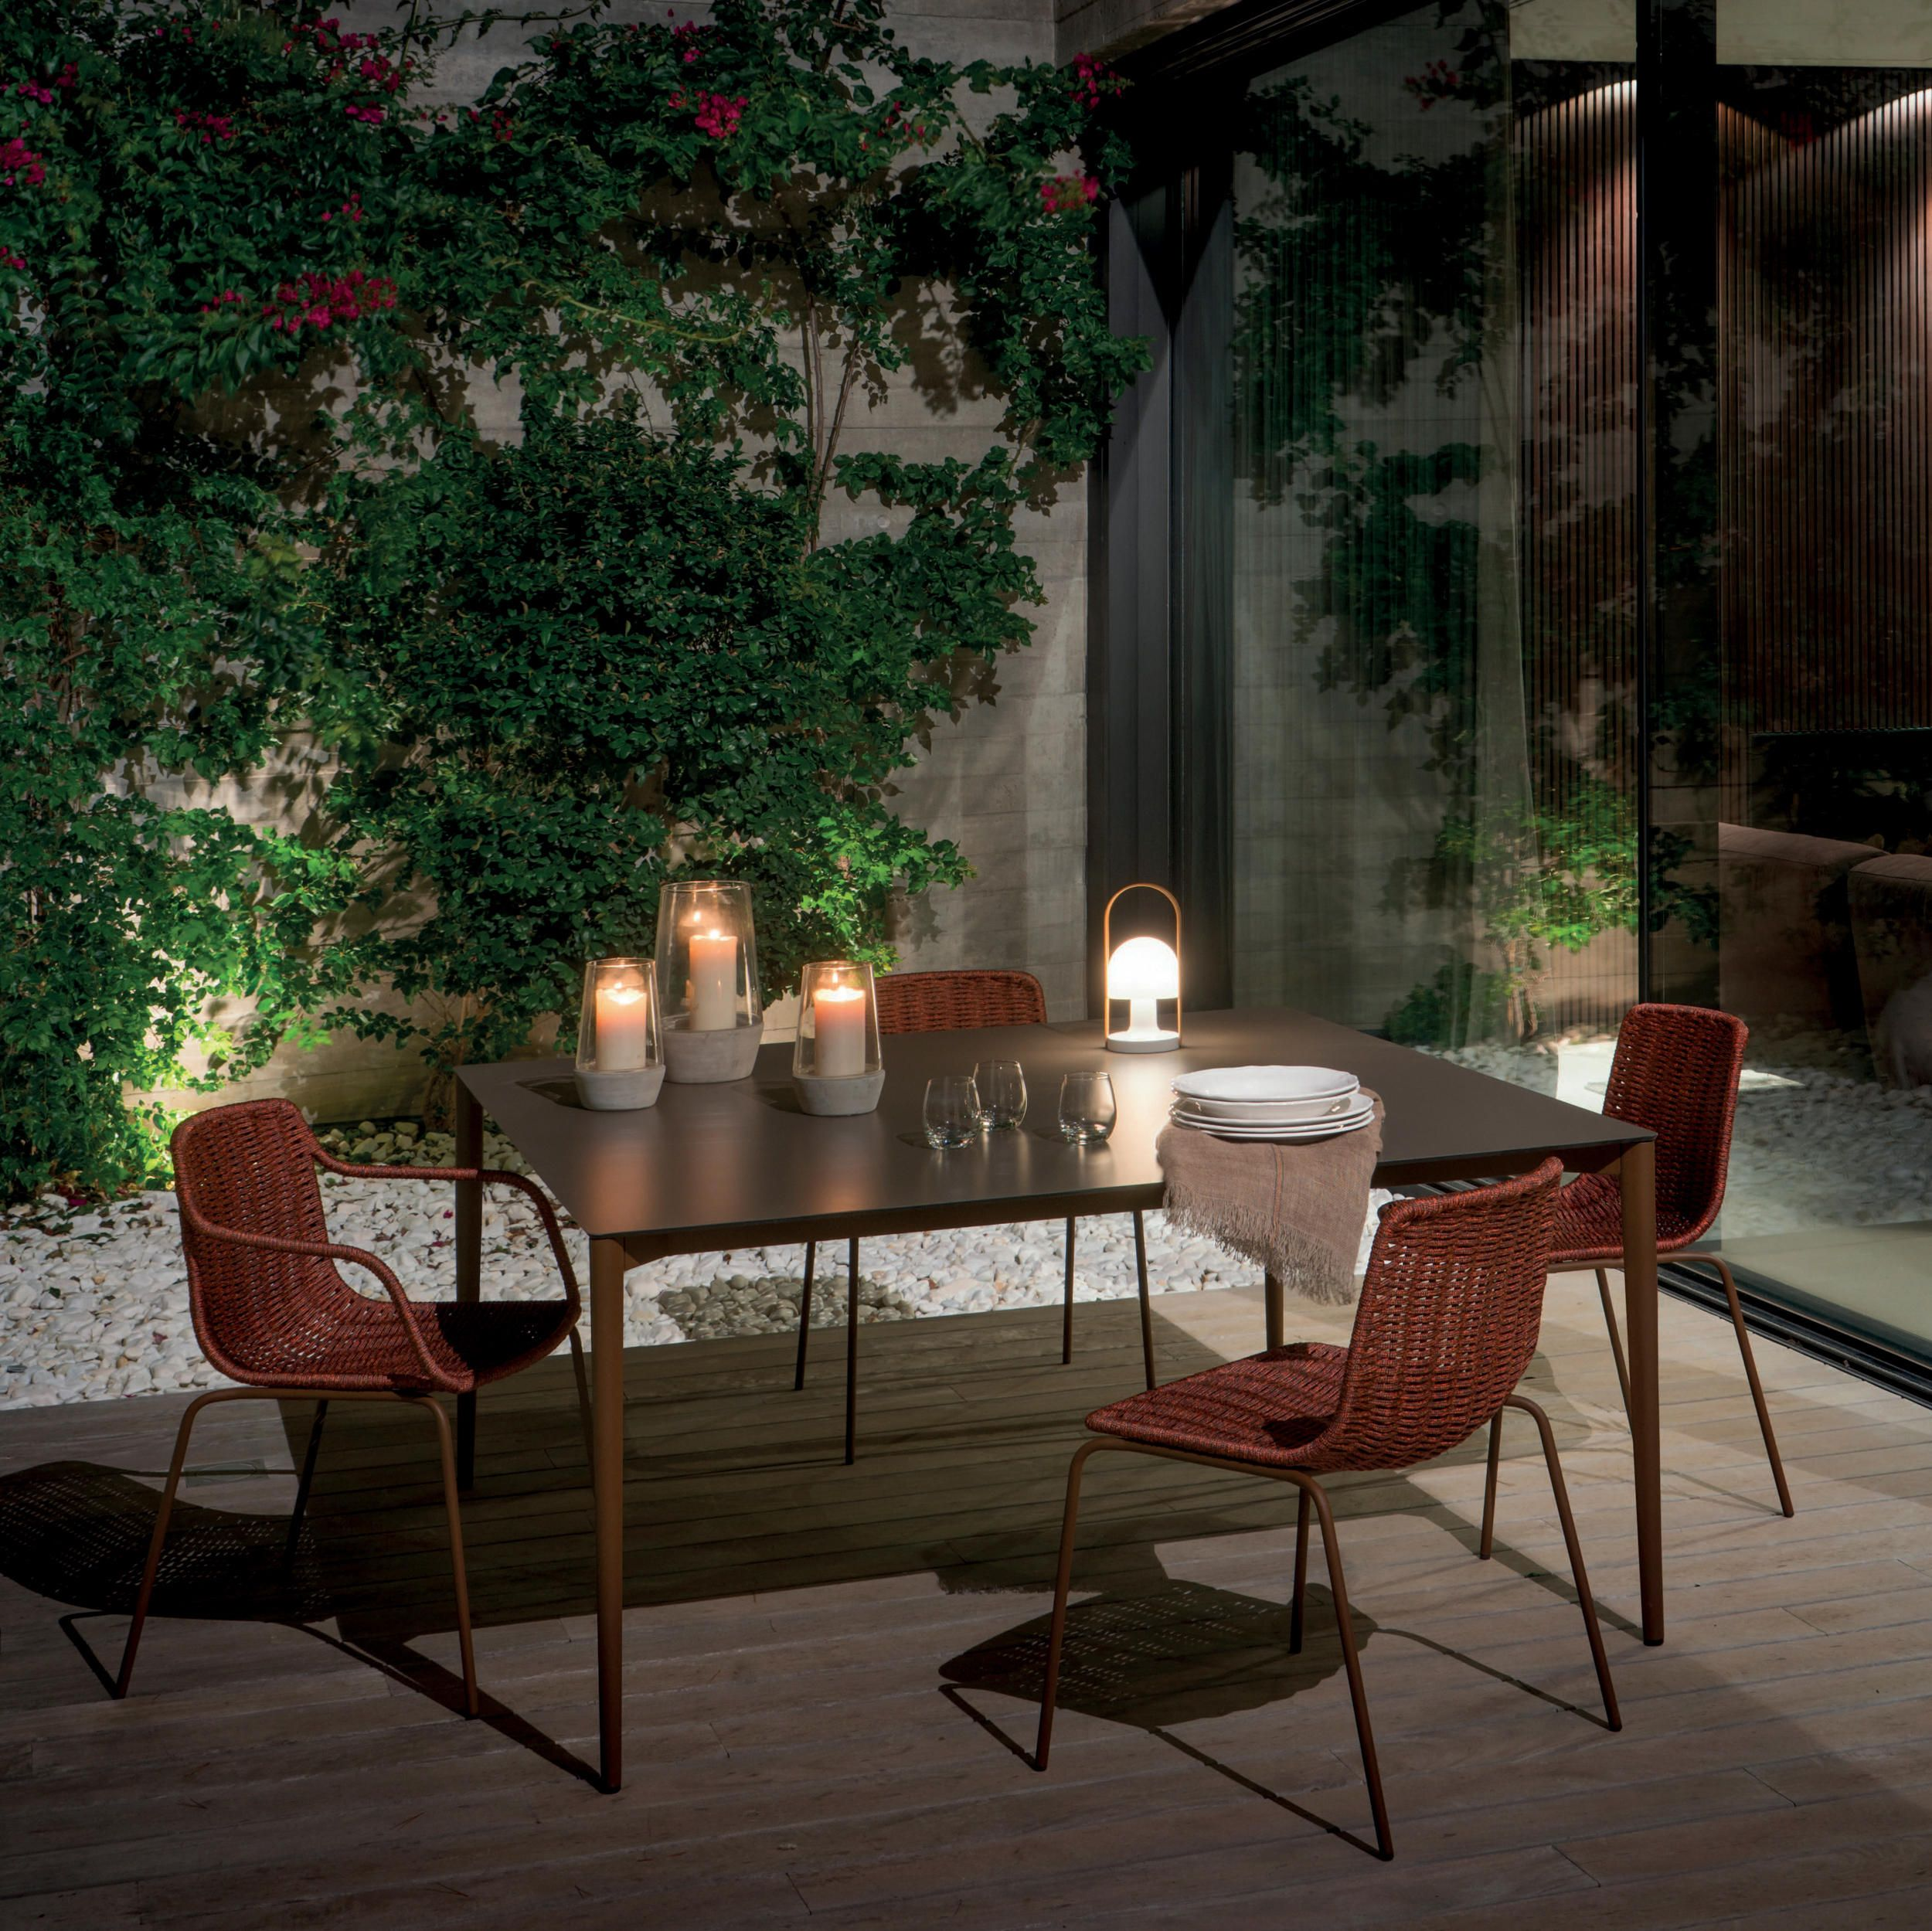 27++ Small square patio dining table Best Seller